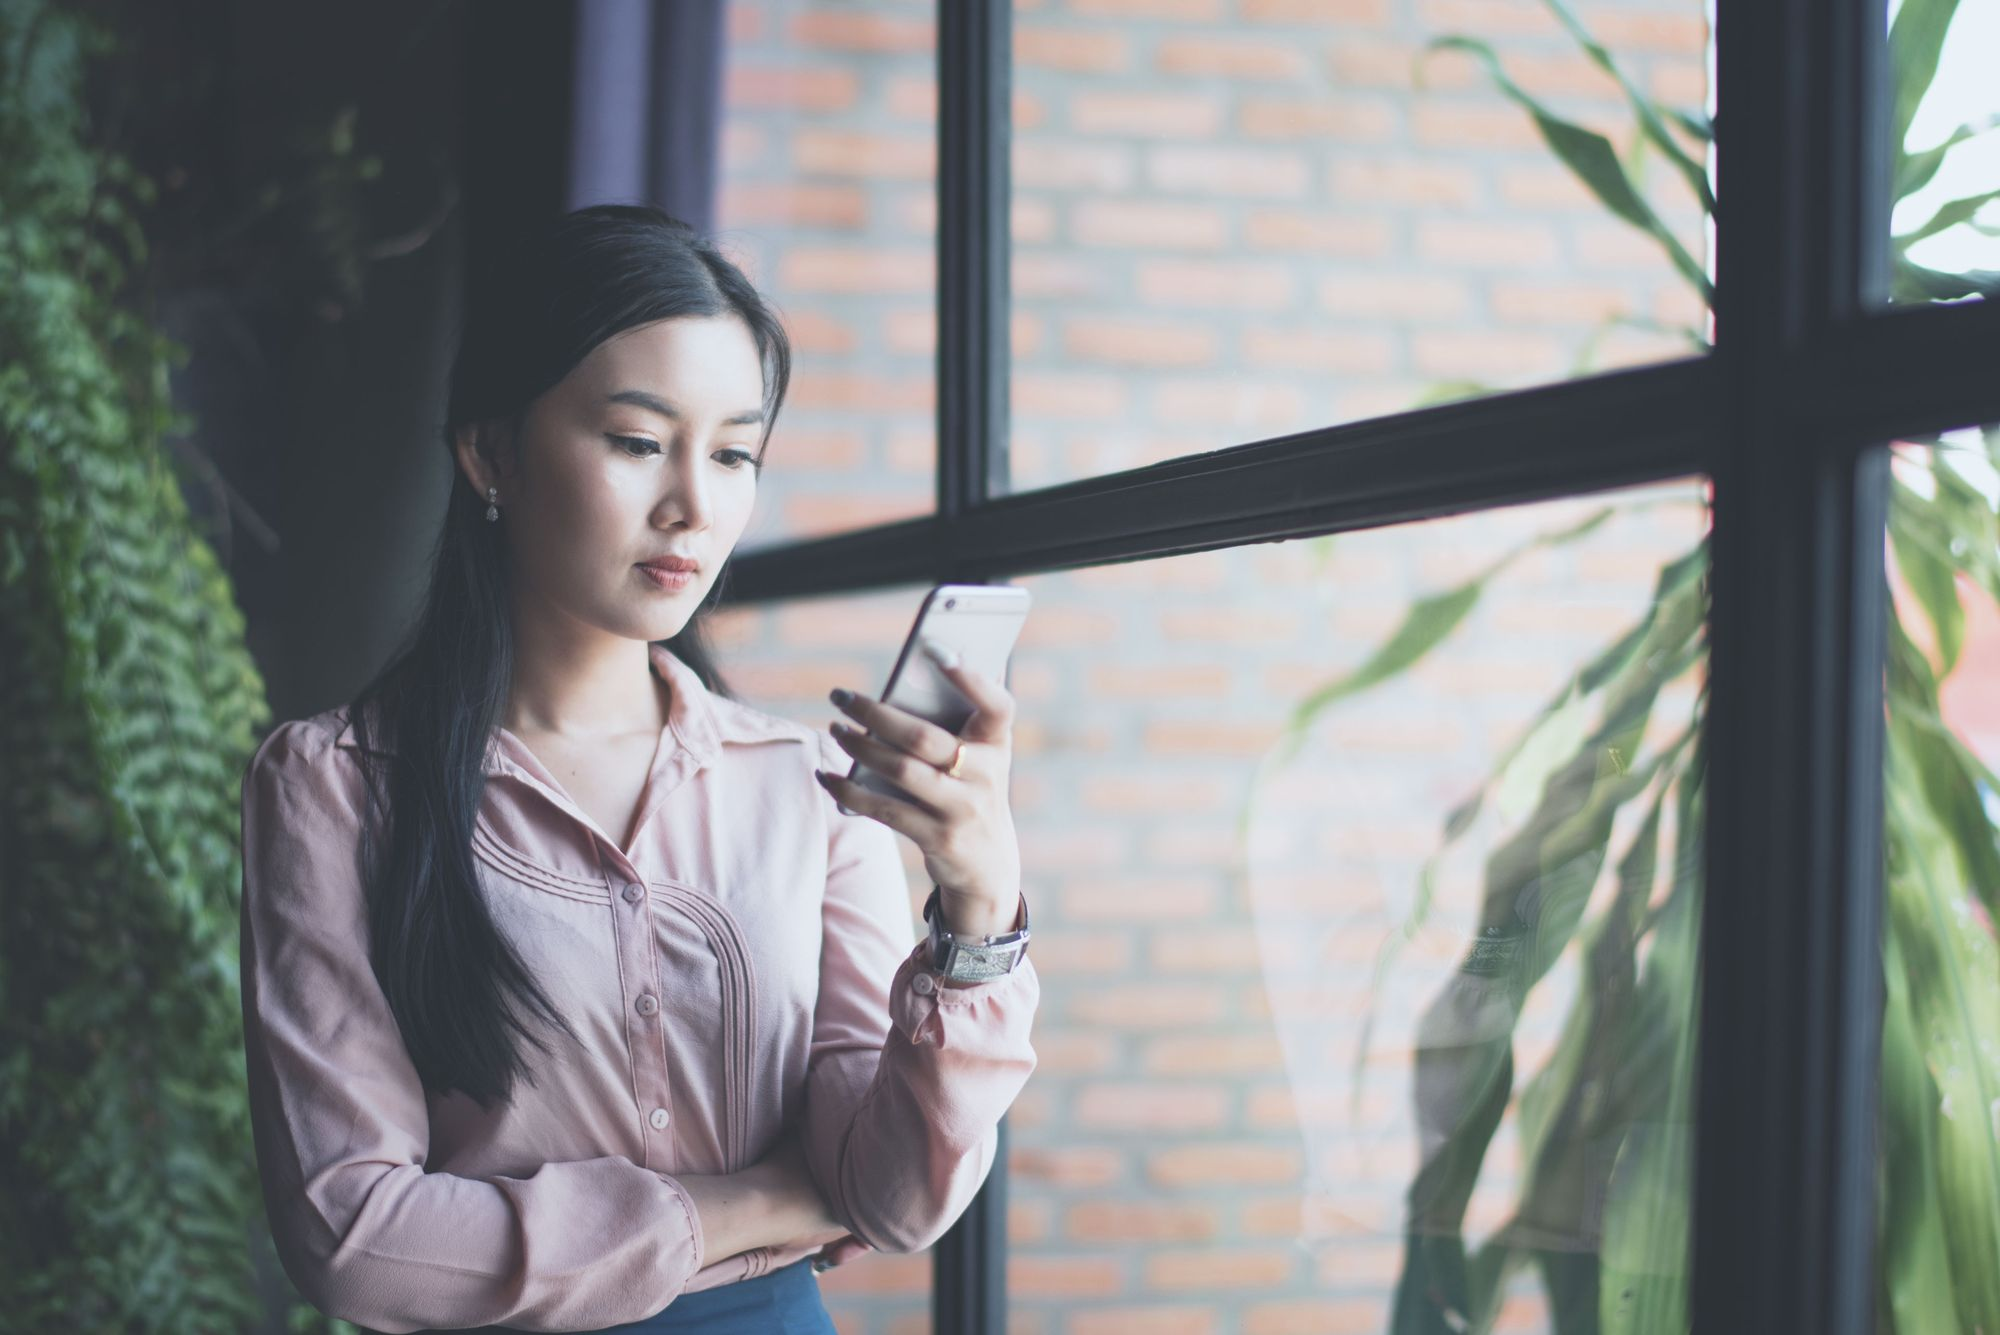 Woman searching on phone